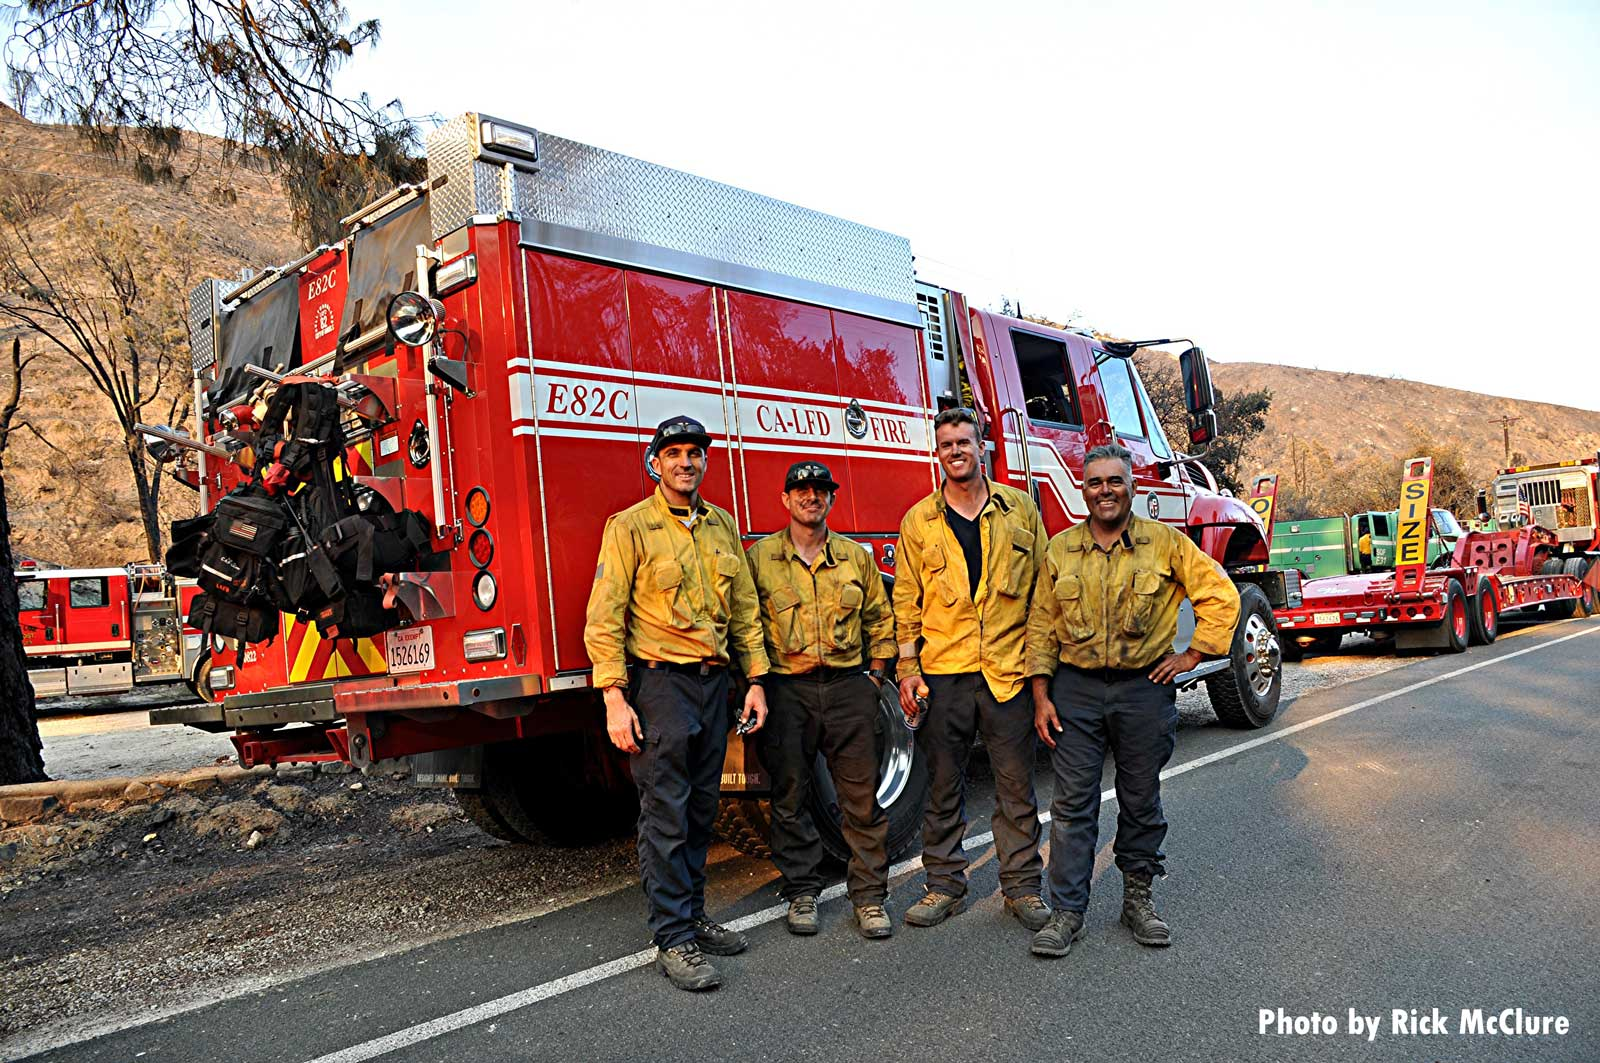 Firefighters near apparatus during wildfire fight